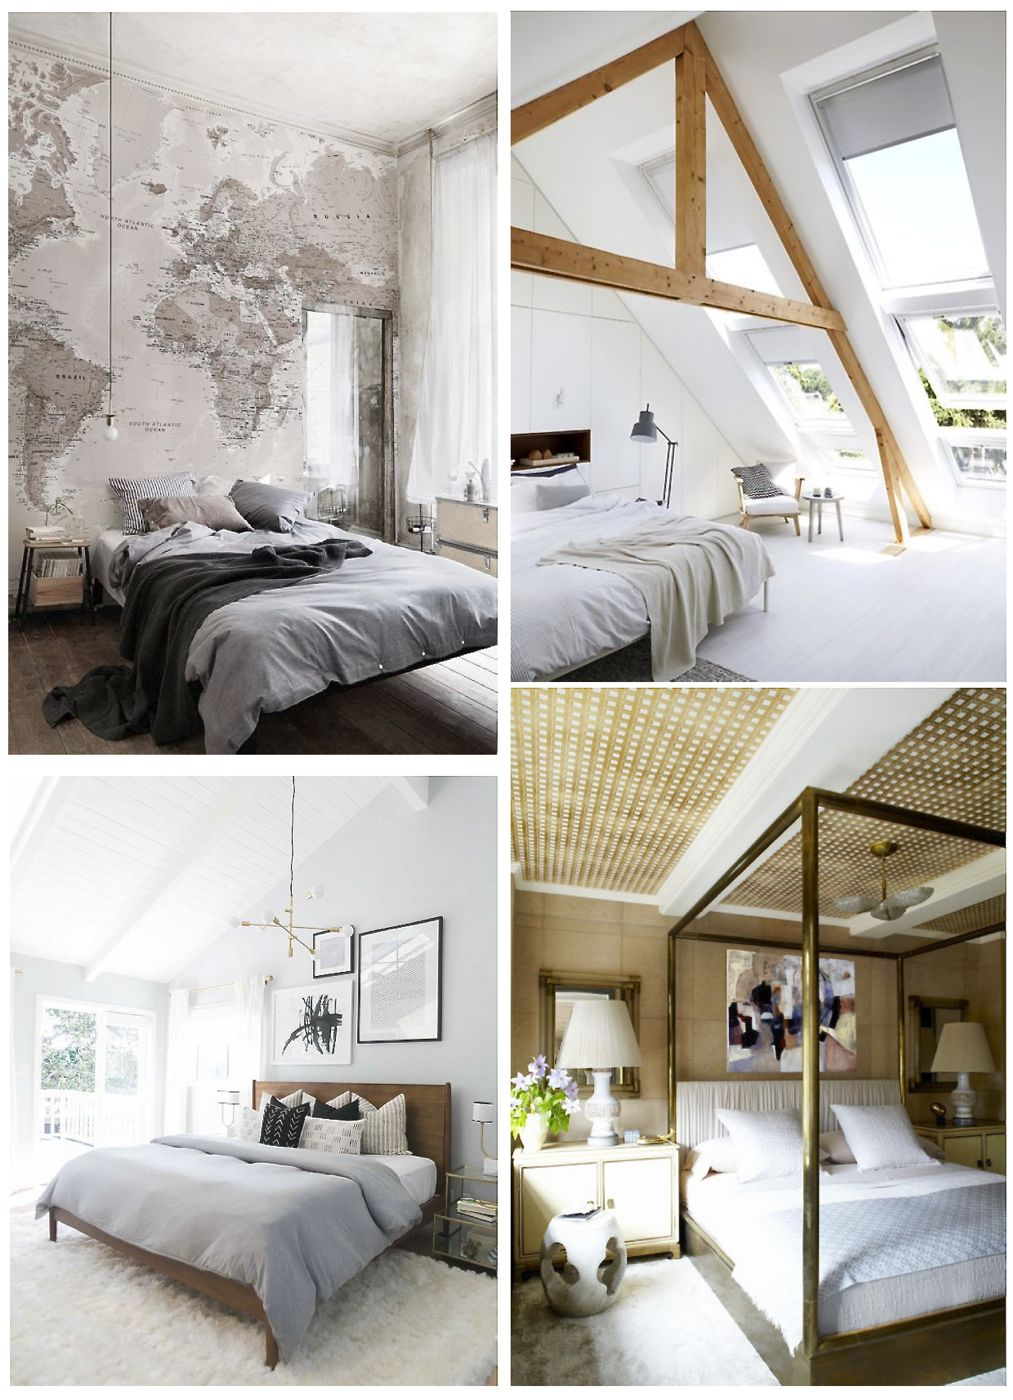 Charmant Bedroom Inspirations Bedroom Ideas